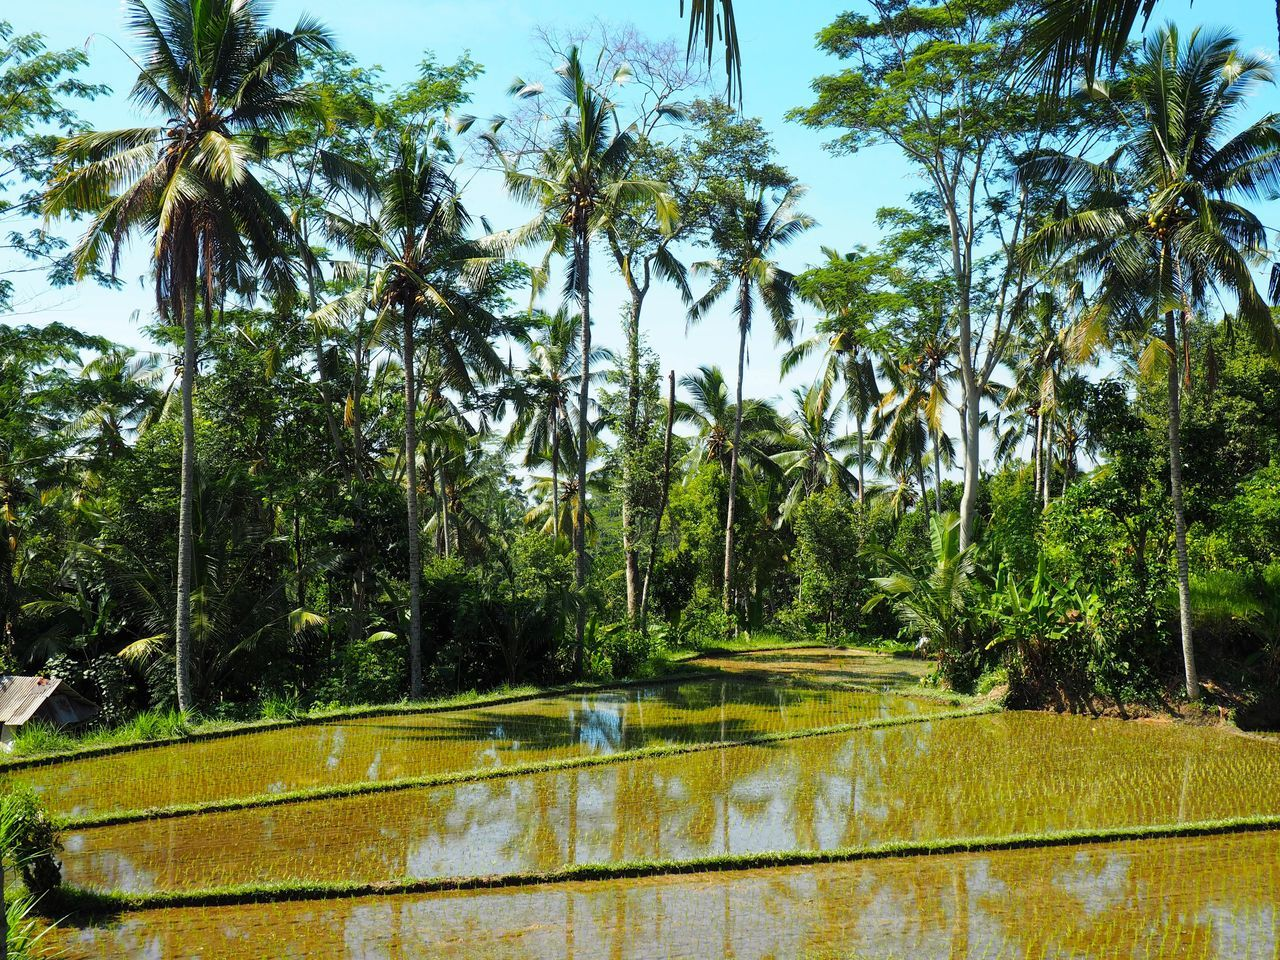 Agriculture Beauty In Nature Blue Sky Coconut Palm Tree Day Exotic Farming Field Food Green Color Growing Growth INDONESIA Indonesian Culture Leaf Nature No People Outdoors Palm Tree Plant Rice Rice Field Rice Plant Sky Tree